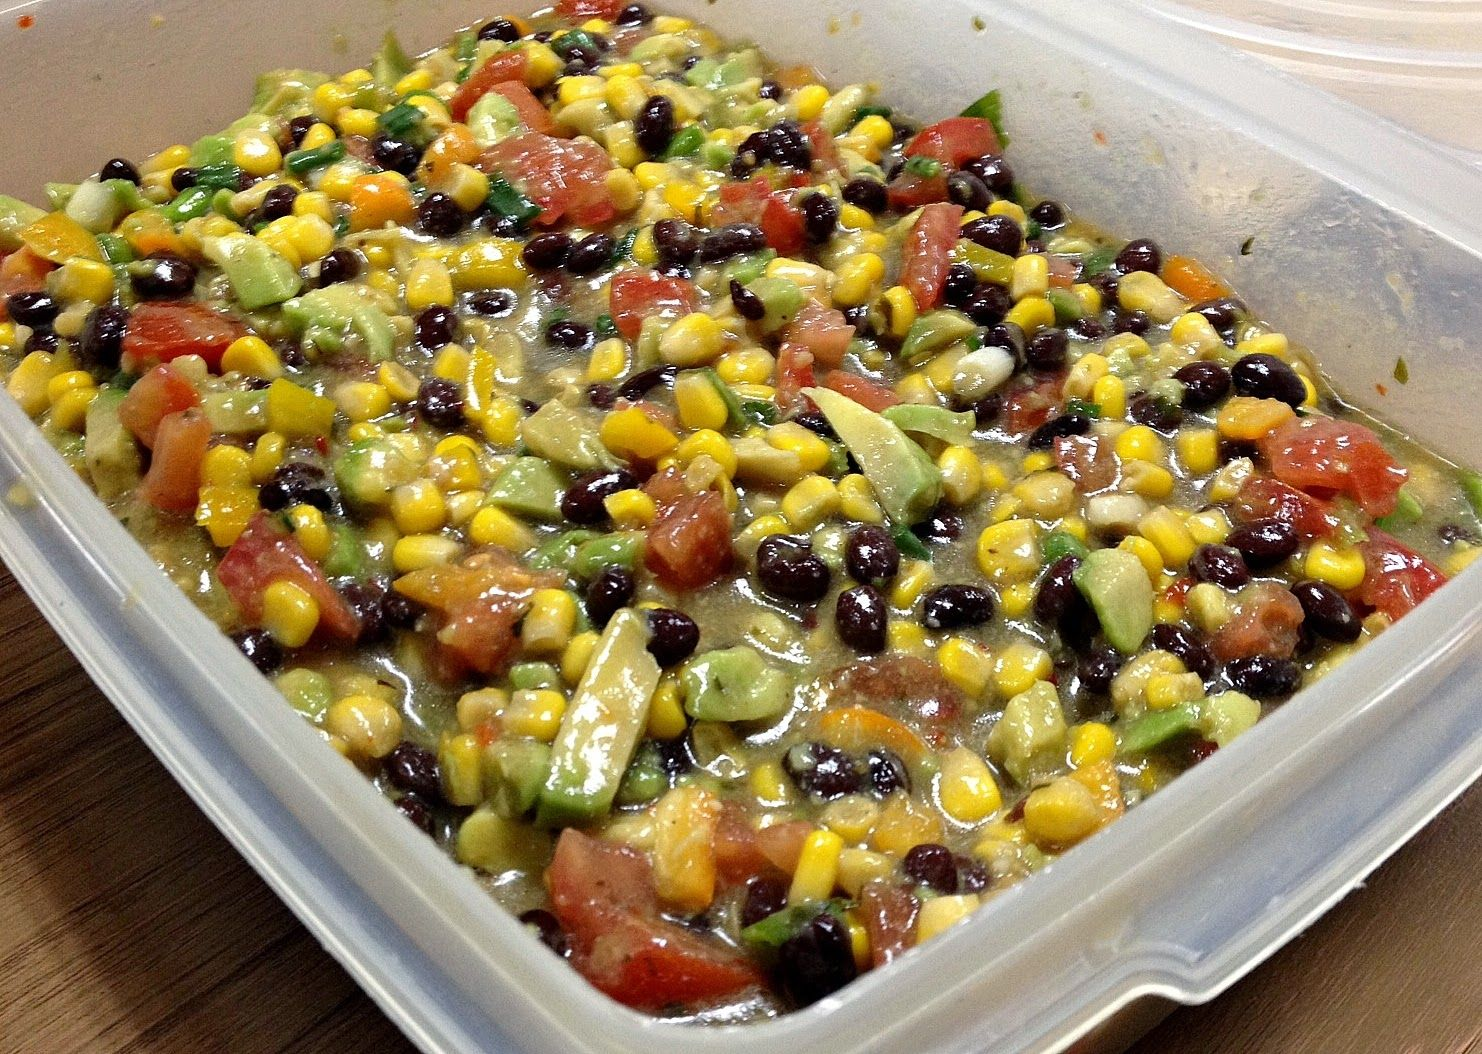 Man That Stuff Is Good!: Whit's Bean & Corn Dip Just in time for Super Bowl Sunday. And if you don't like football? Here's a good dip to nibble on anytime!  http://manthatstuffisgood.blogspot.com/2015/01/whits-bean-corn-dip.html